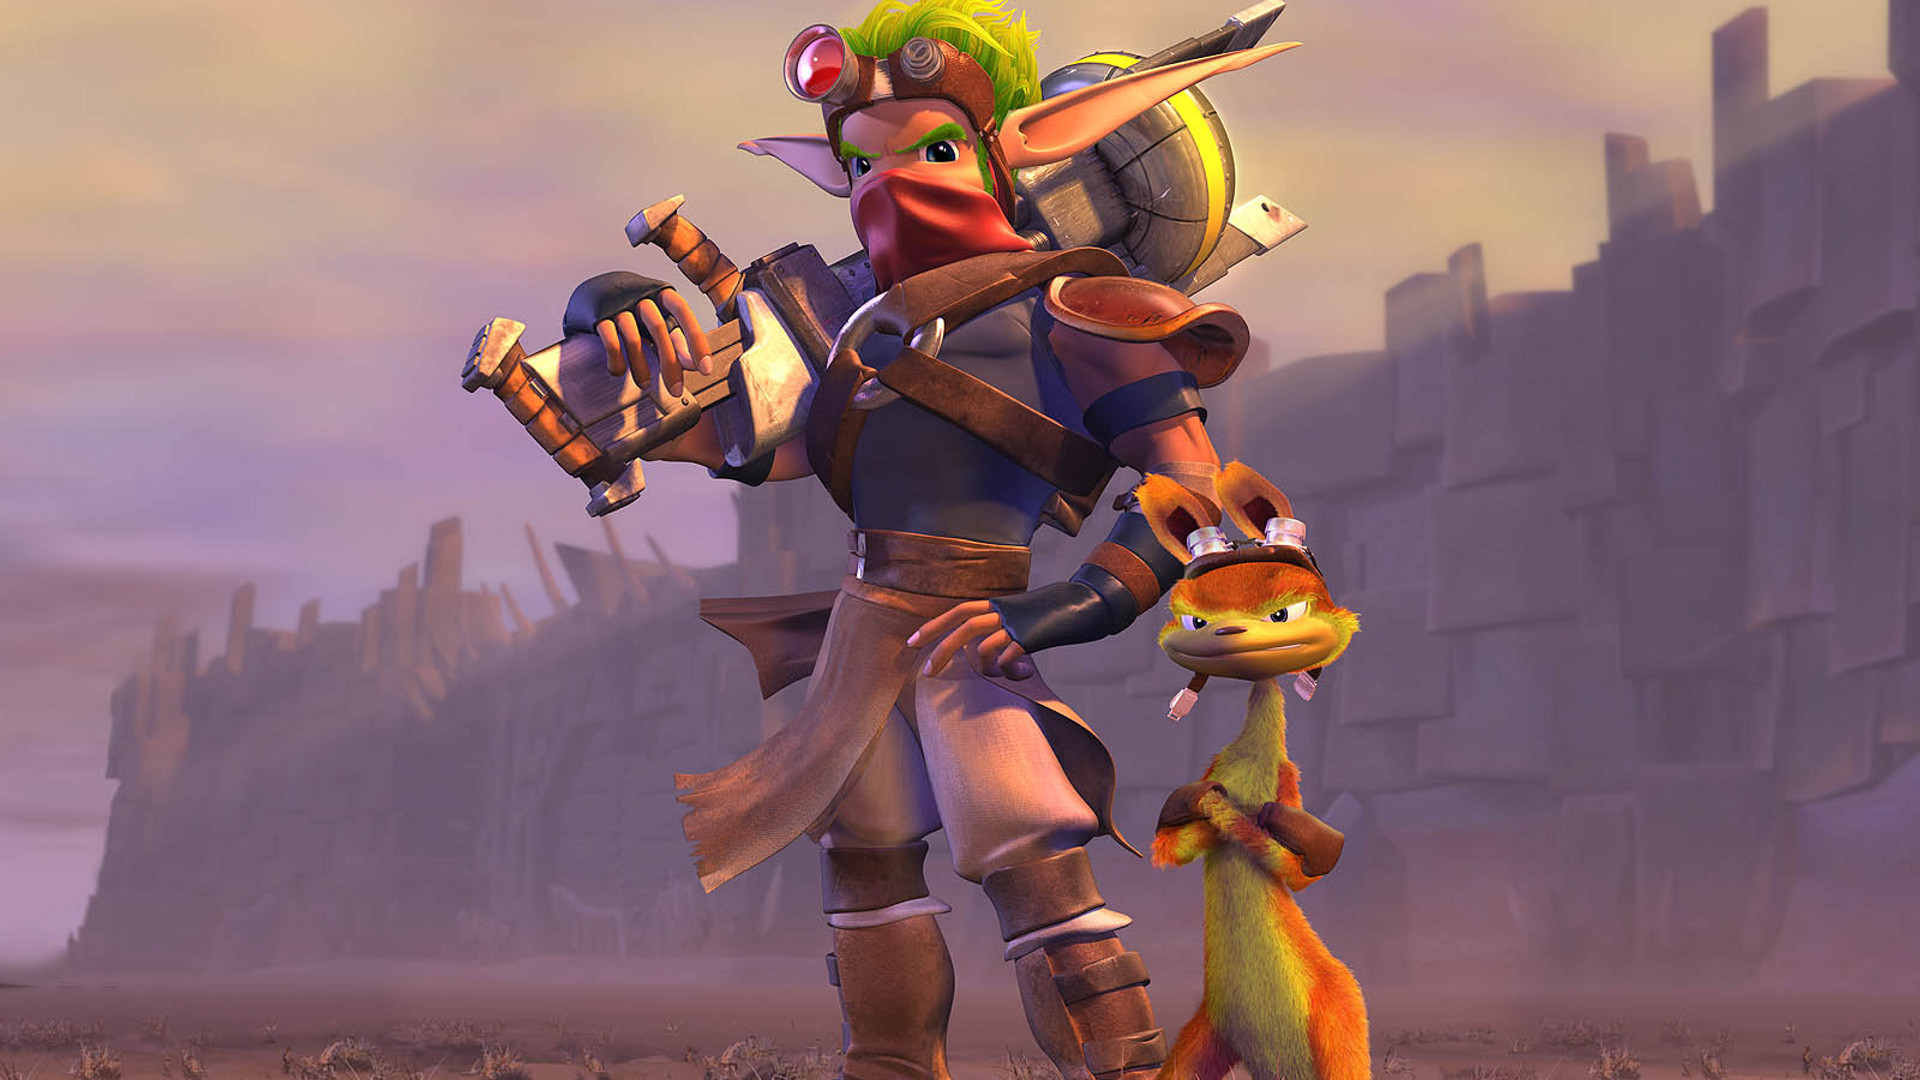 jak-and-daxter-cover-image.jpg